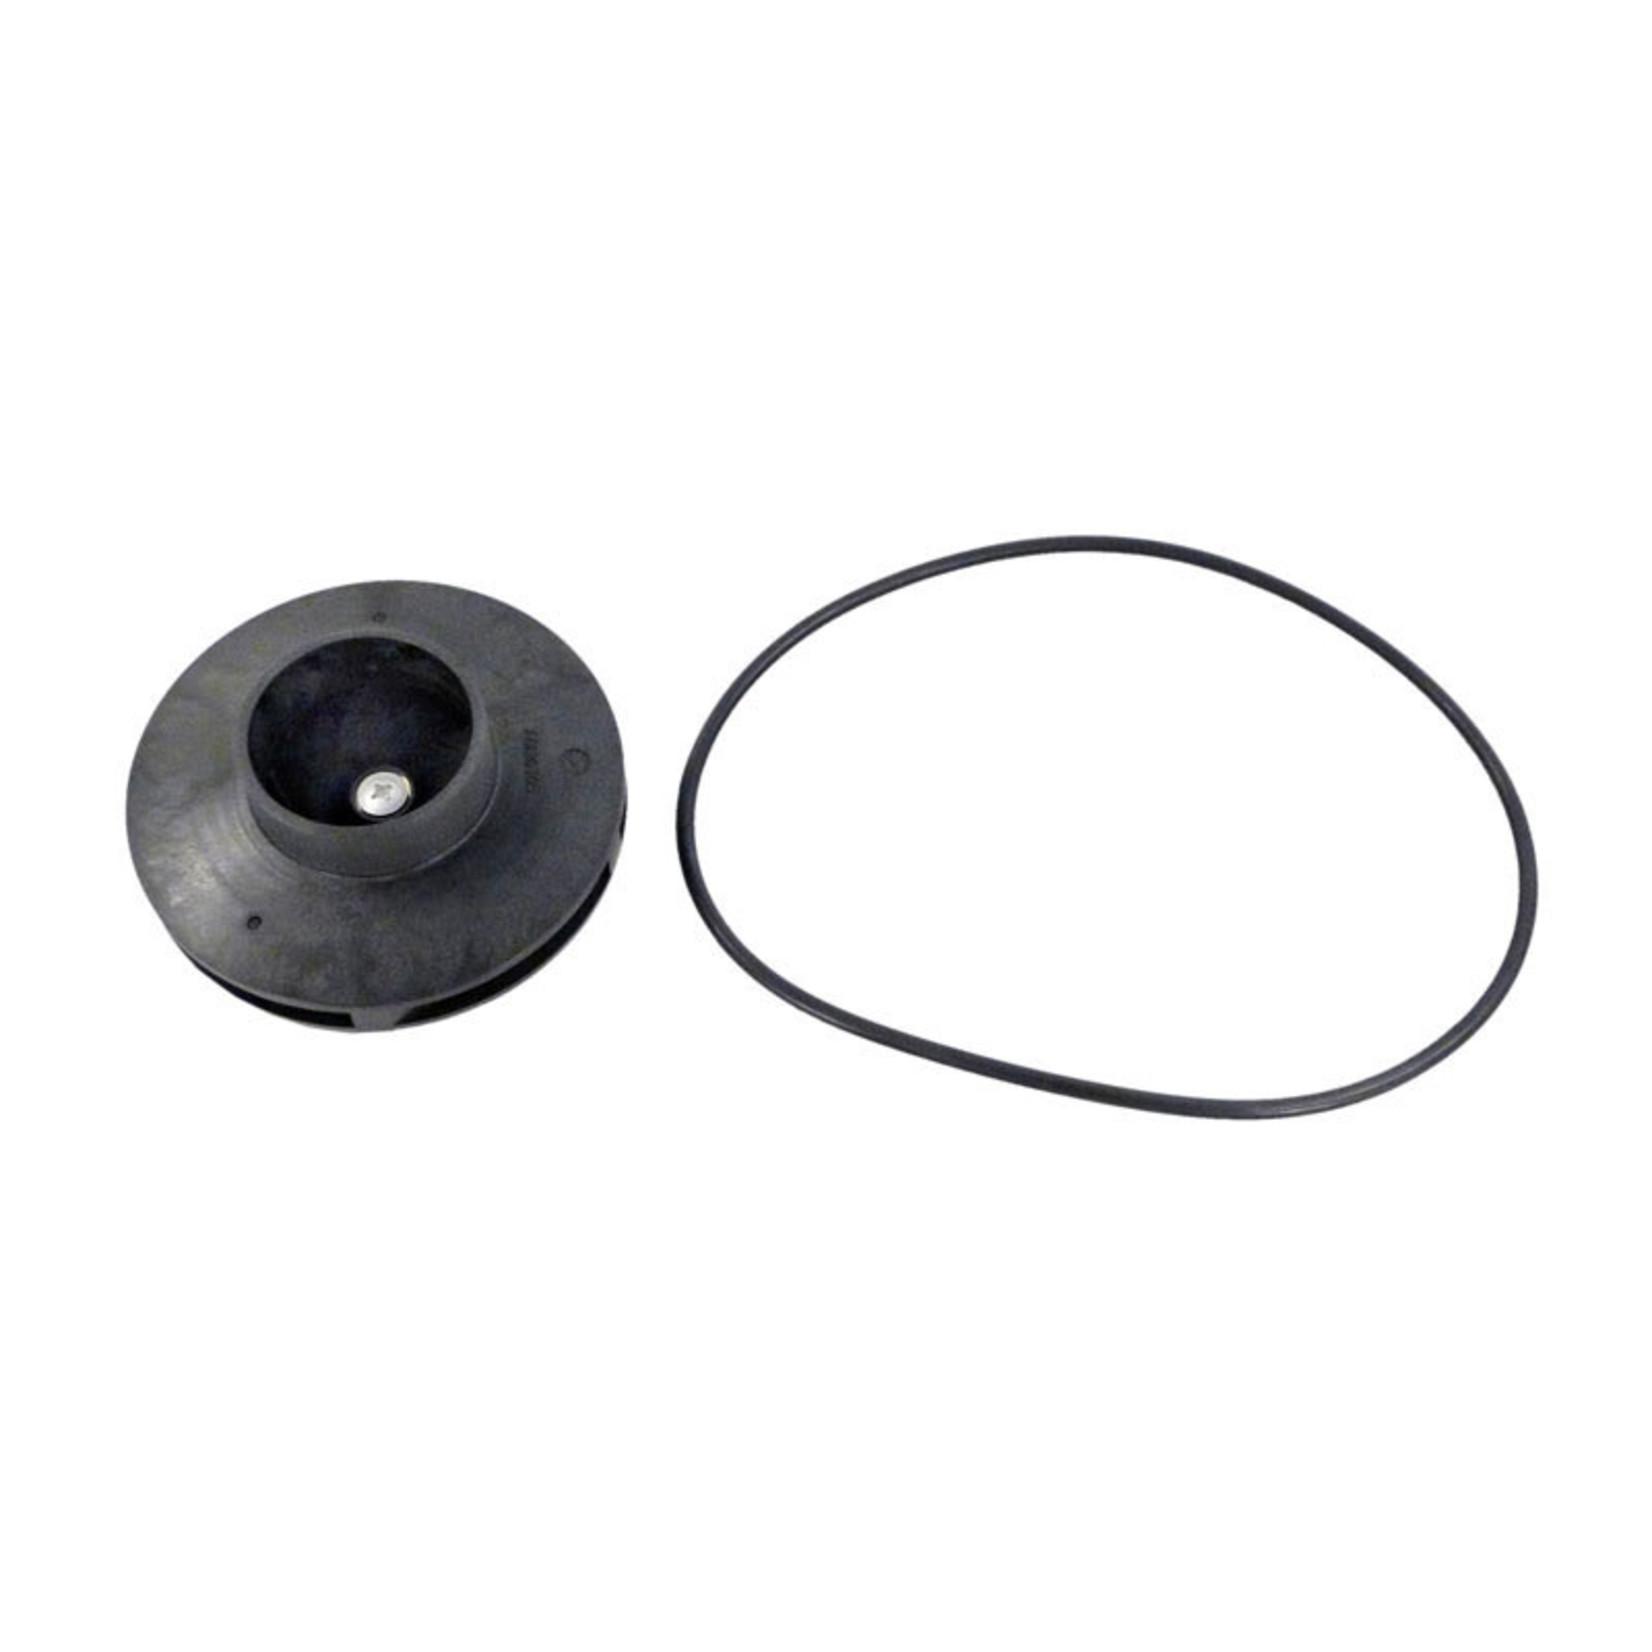 Jandy JANDY IMPELLER 2.5 HP & SCREW W OR-RING